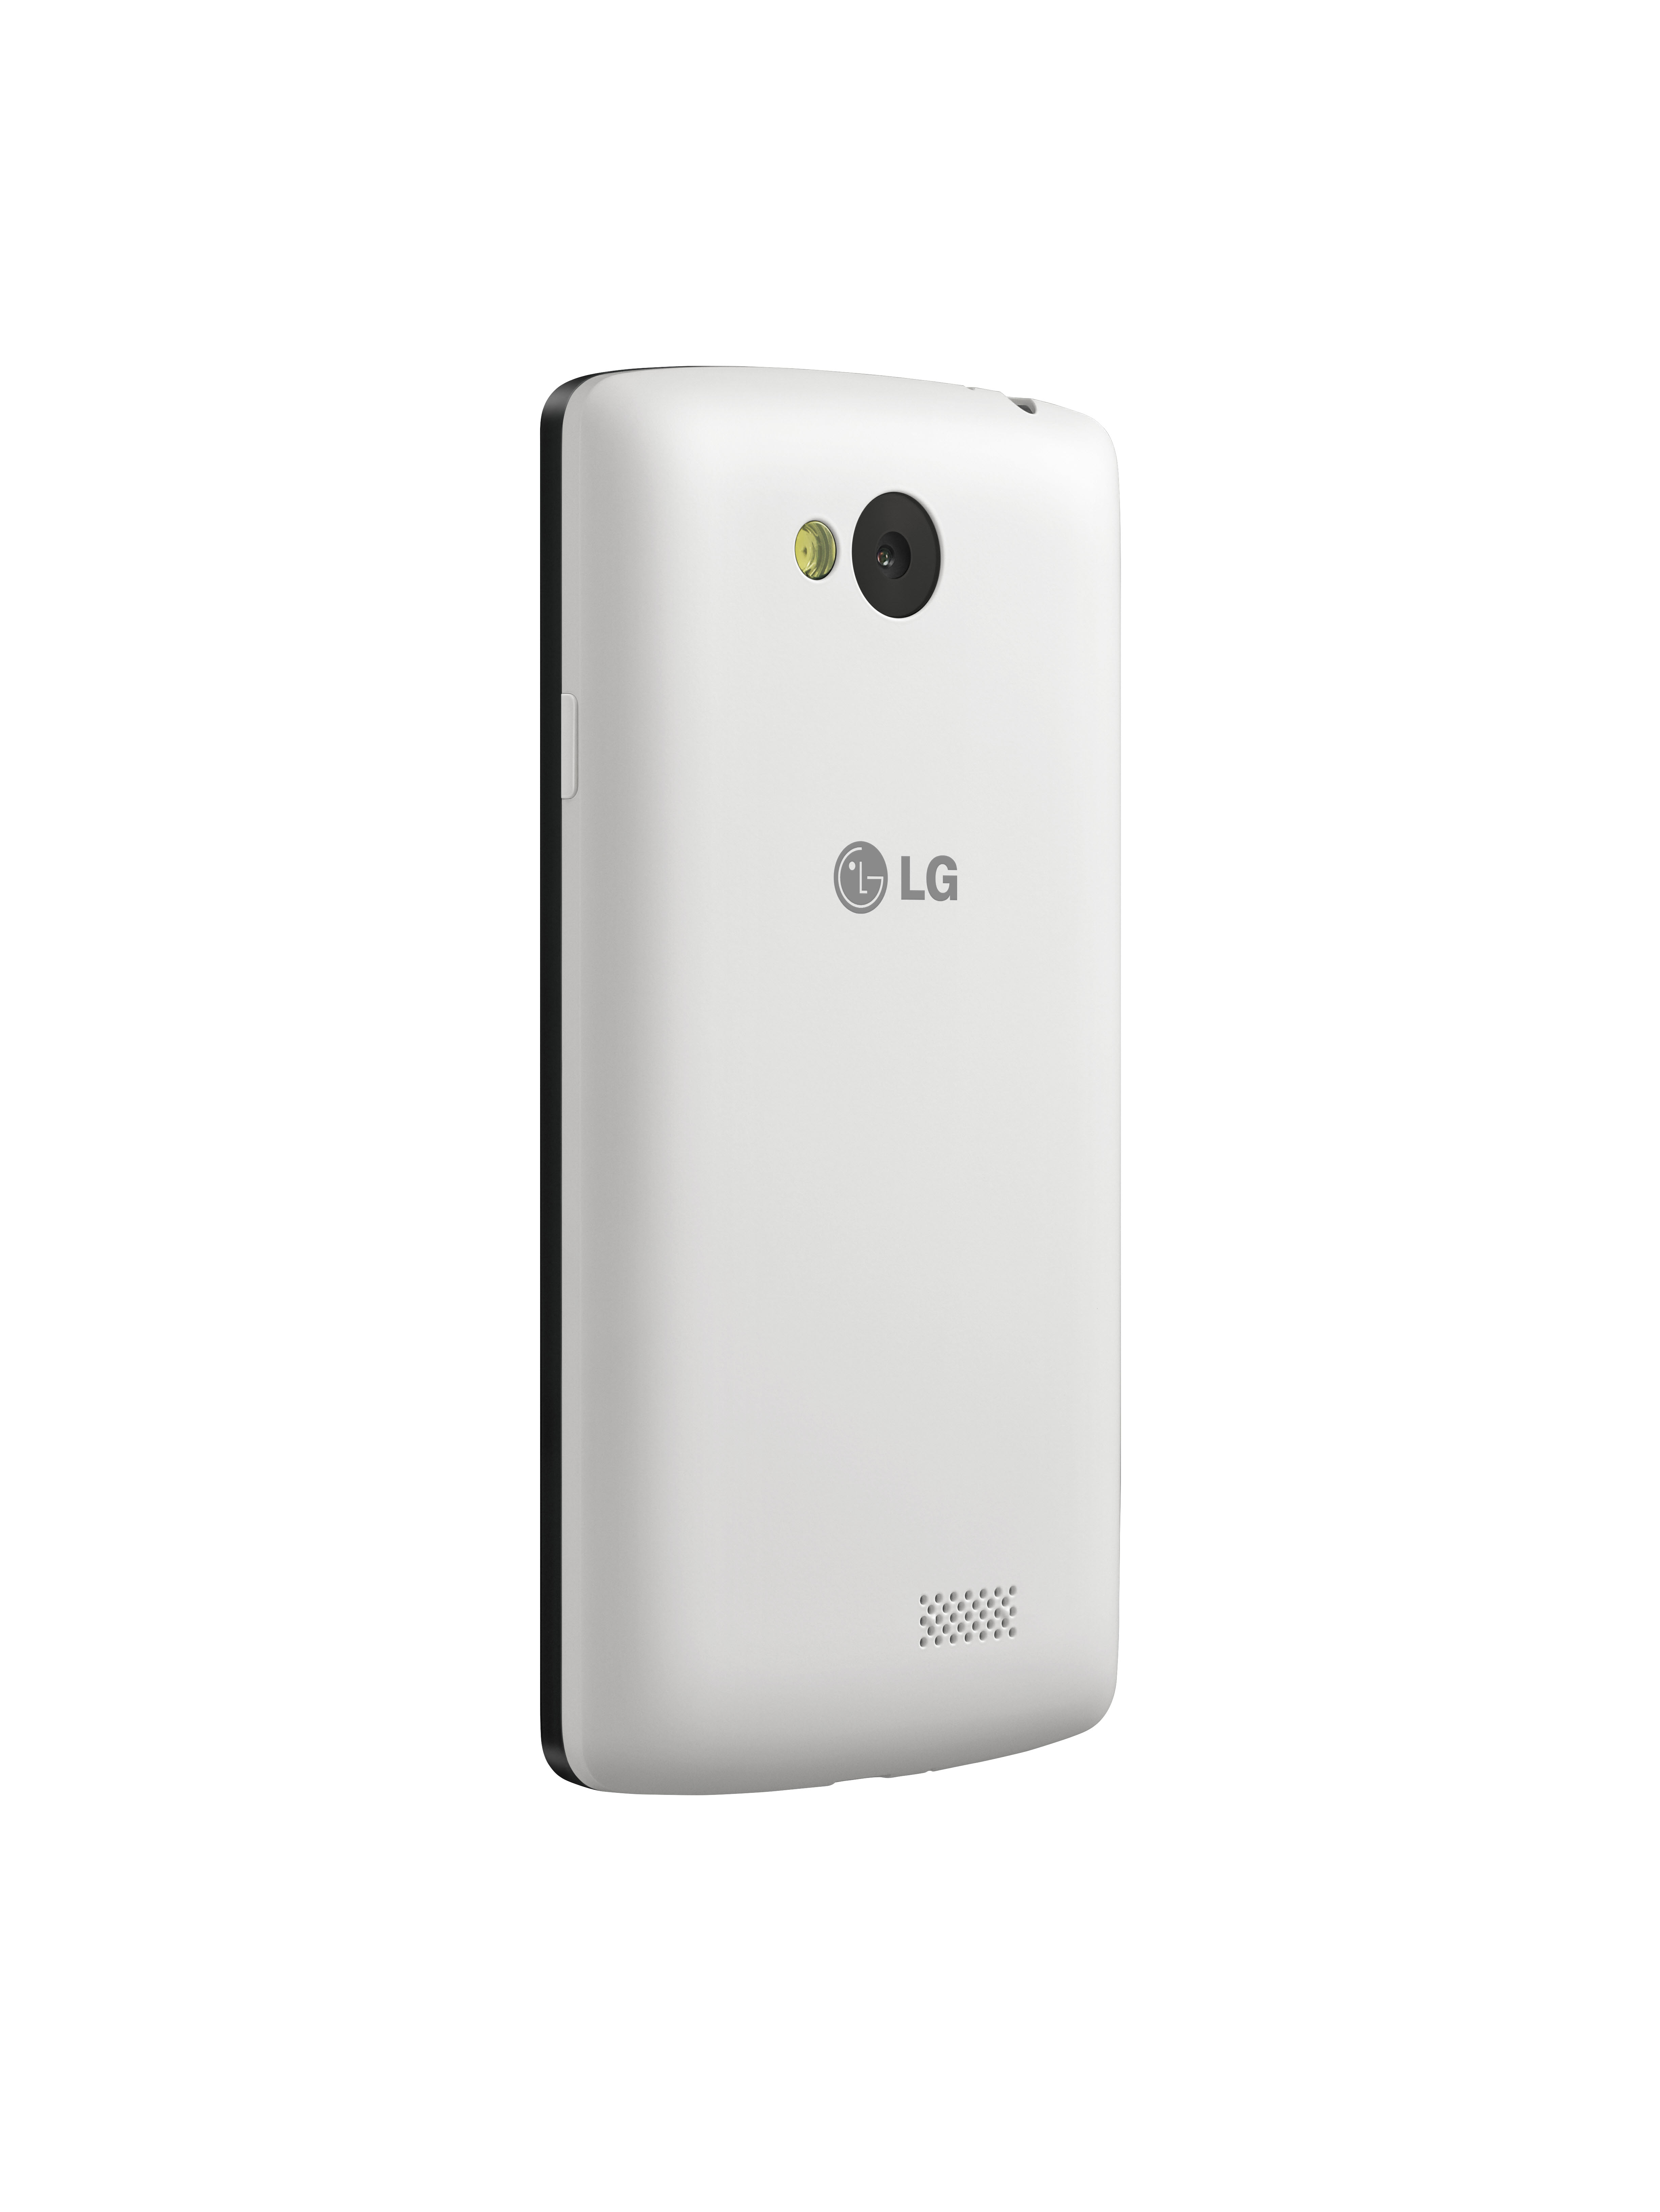 A back view of LG F60 in white color.